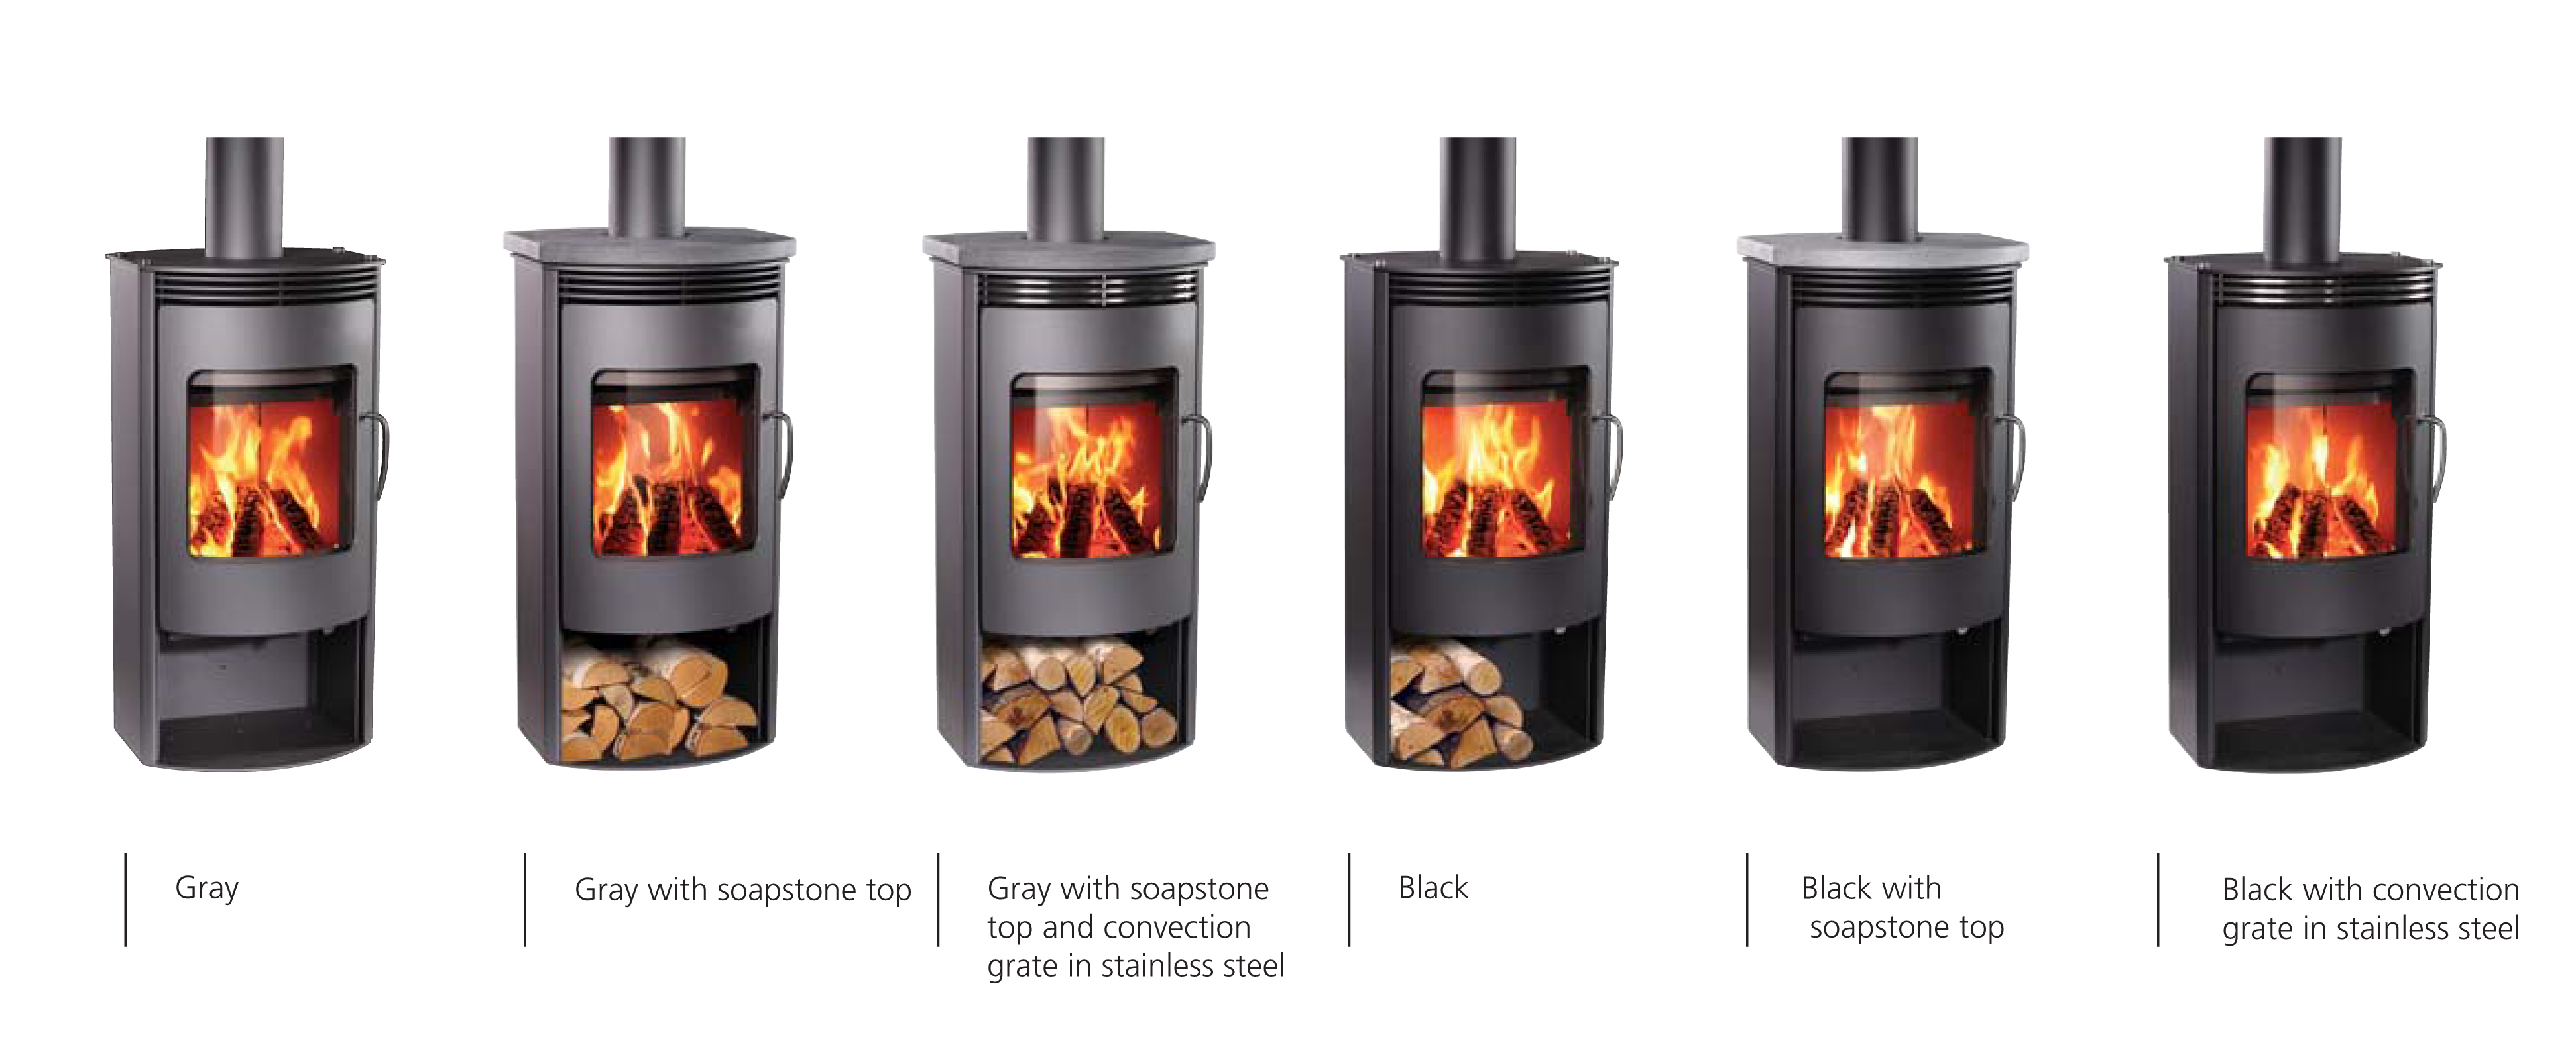 firebox wood burning stoves with Rais Gabo Wood Stove on Living Room furthermore 281064663885 together with Cui Dvd48fp30n furthermore Riva Vision Medium Gas Stoves in addition Firebelly Fb2 Double Sided Stove Reviews.